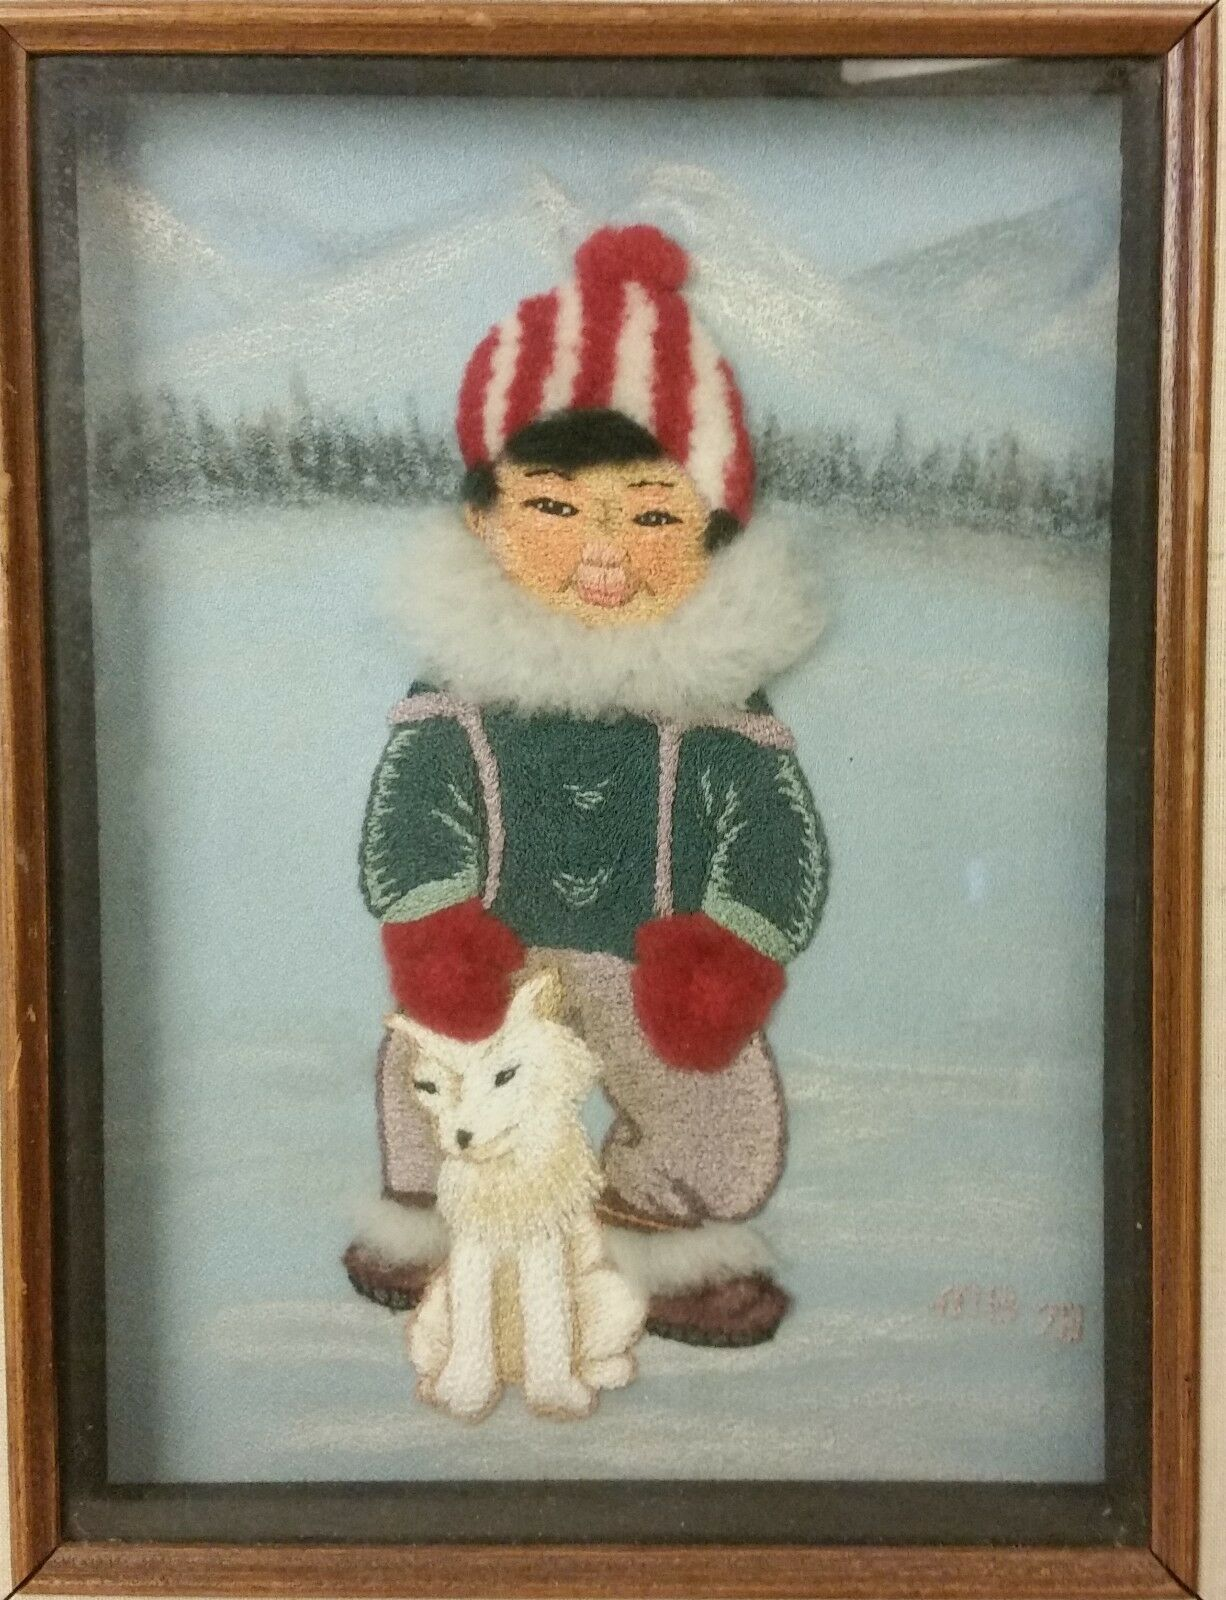 FABRIC ART signed MB dated 78 Inuit Boy & Dog Frame 16\